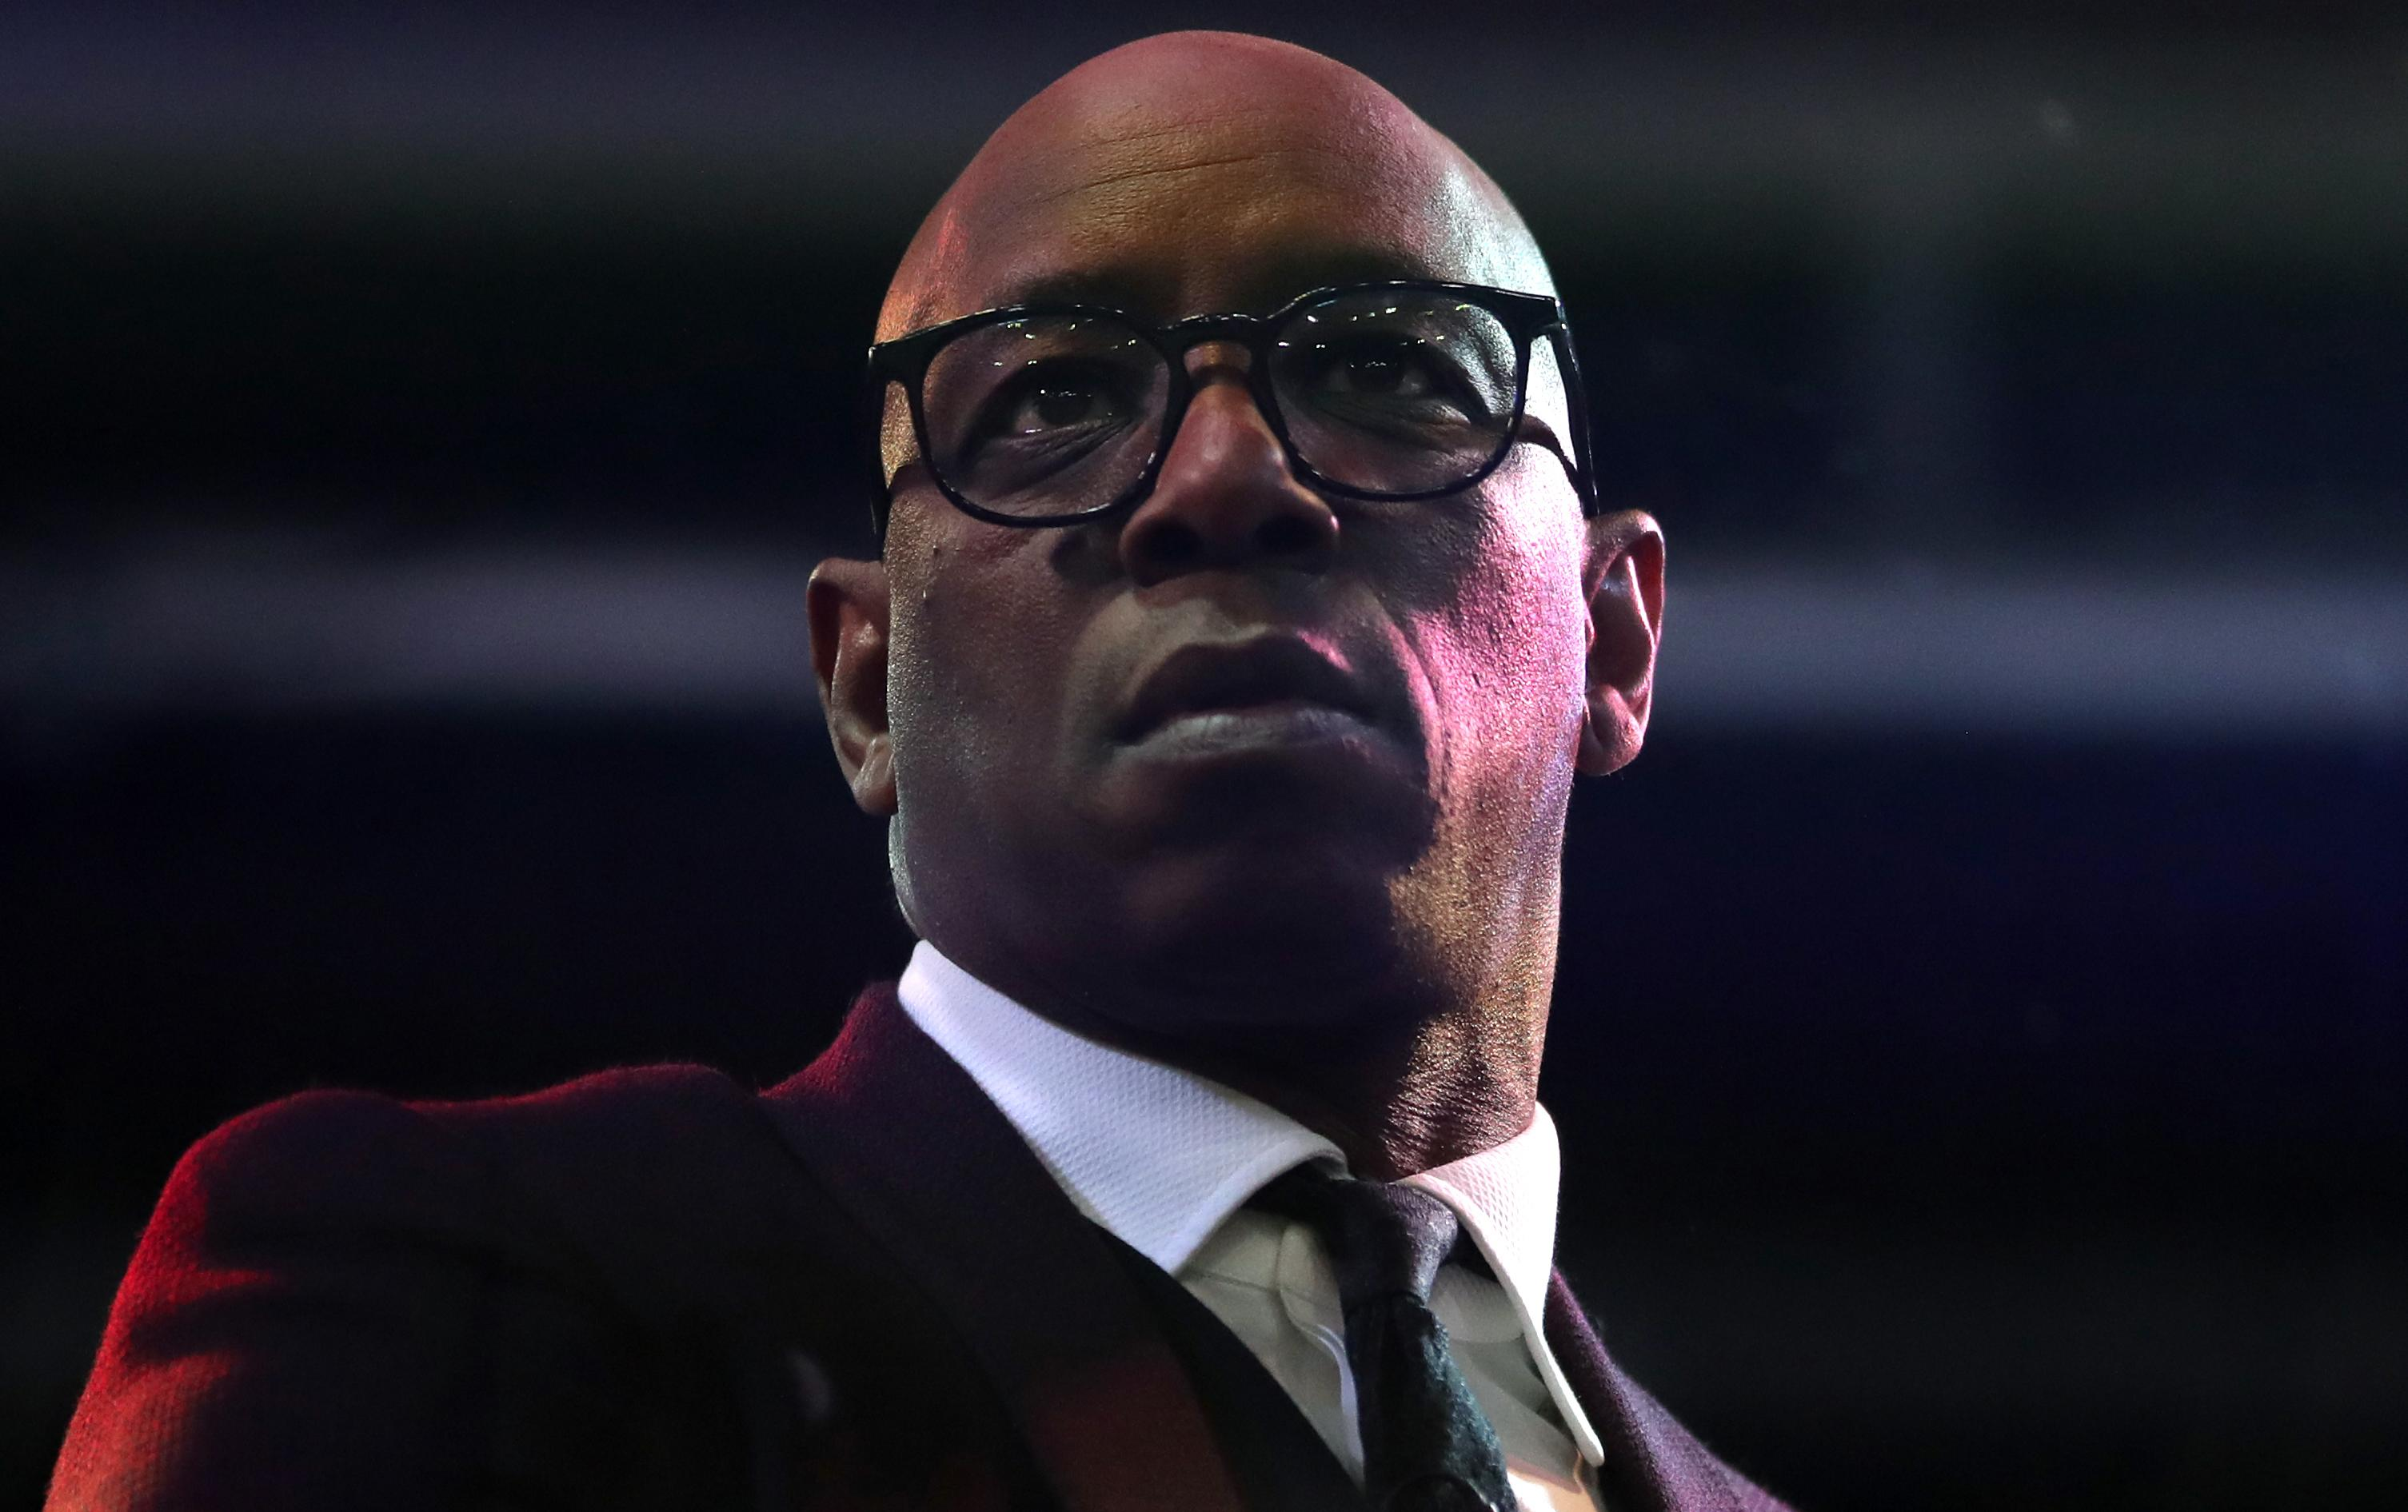 Ian Wright regrets appearing on 'I'm A Celebrity... Get Me Out Of Here!'